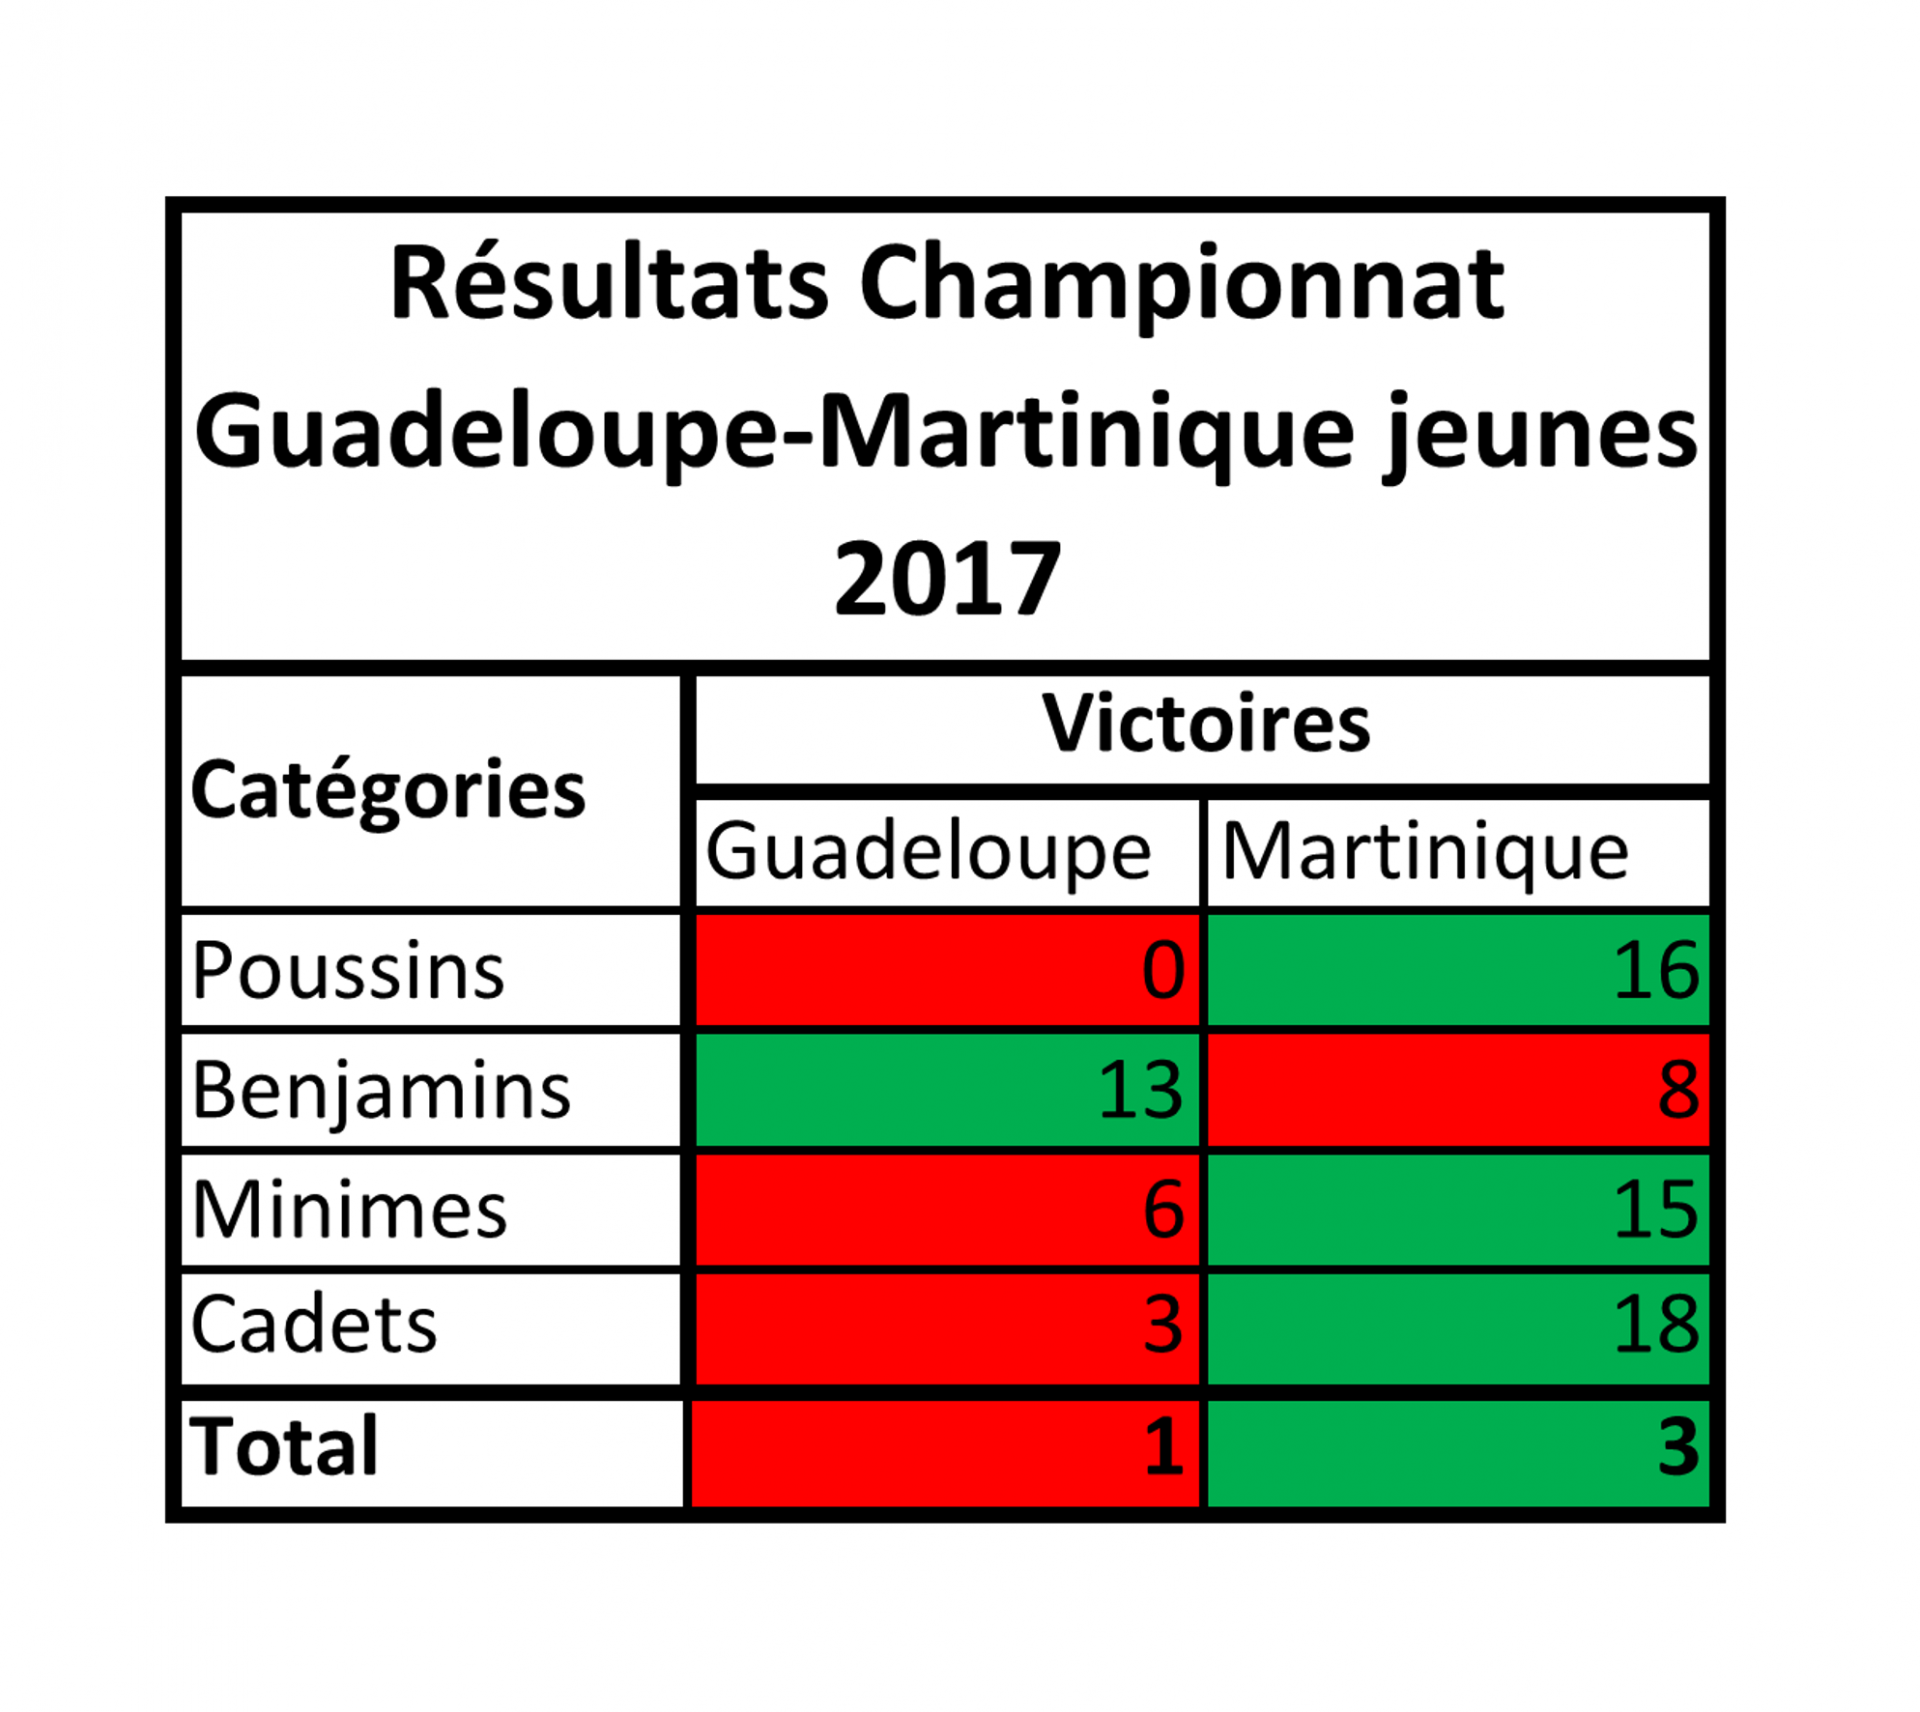 Resultats synthetiques